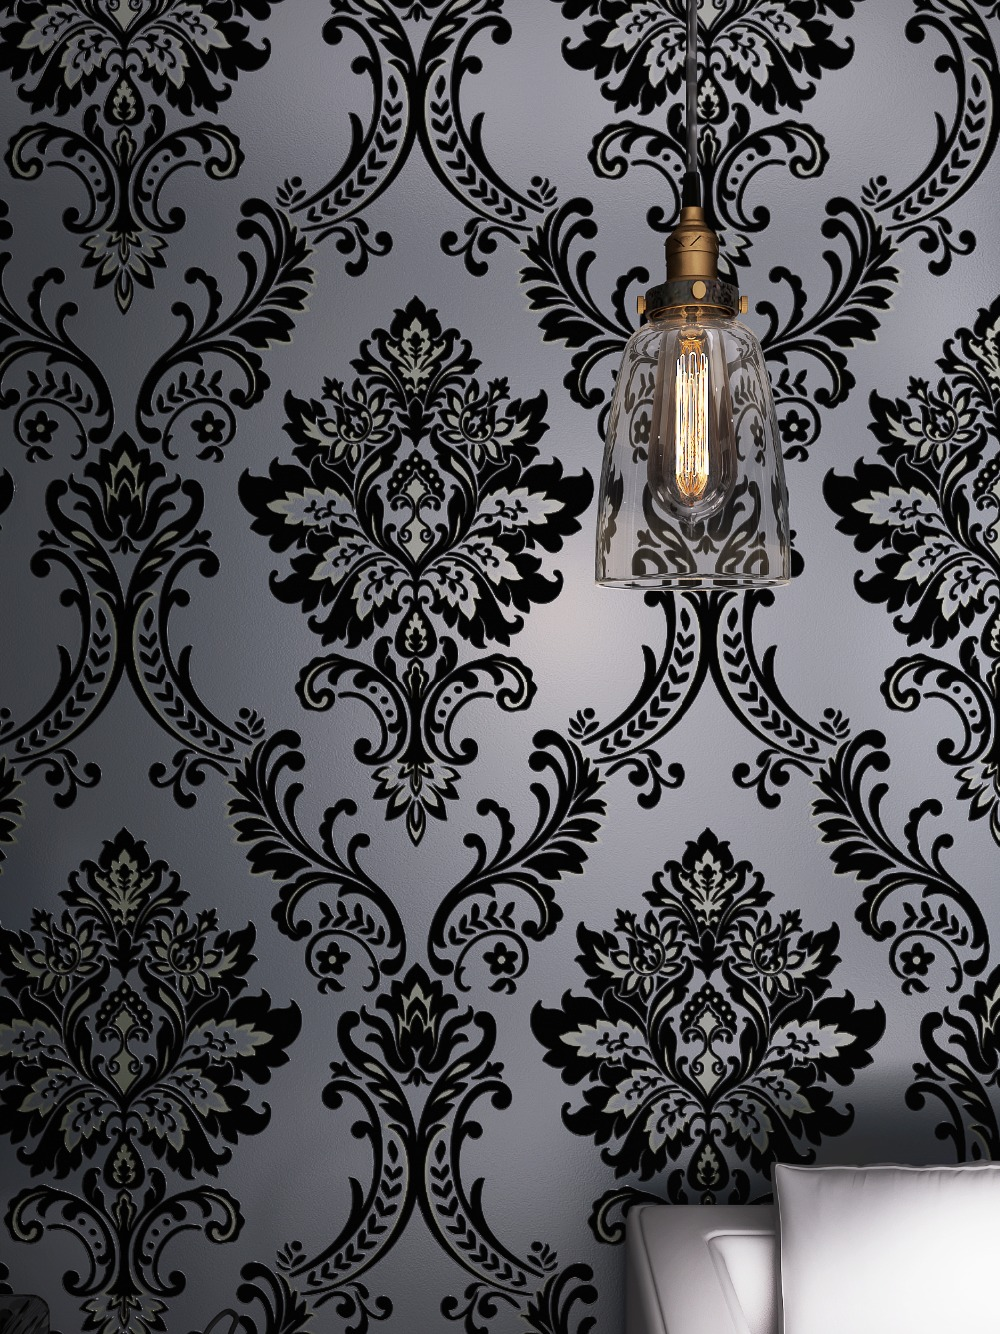 Classic Mystery Black Velvet Flocking Damask Wallpaper Textile Wallcovering mystery mtv 3029lta2 black